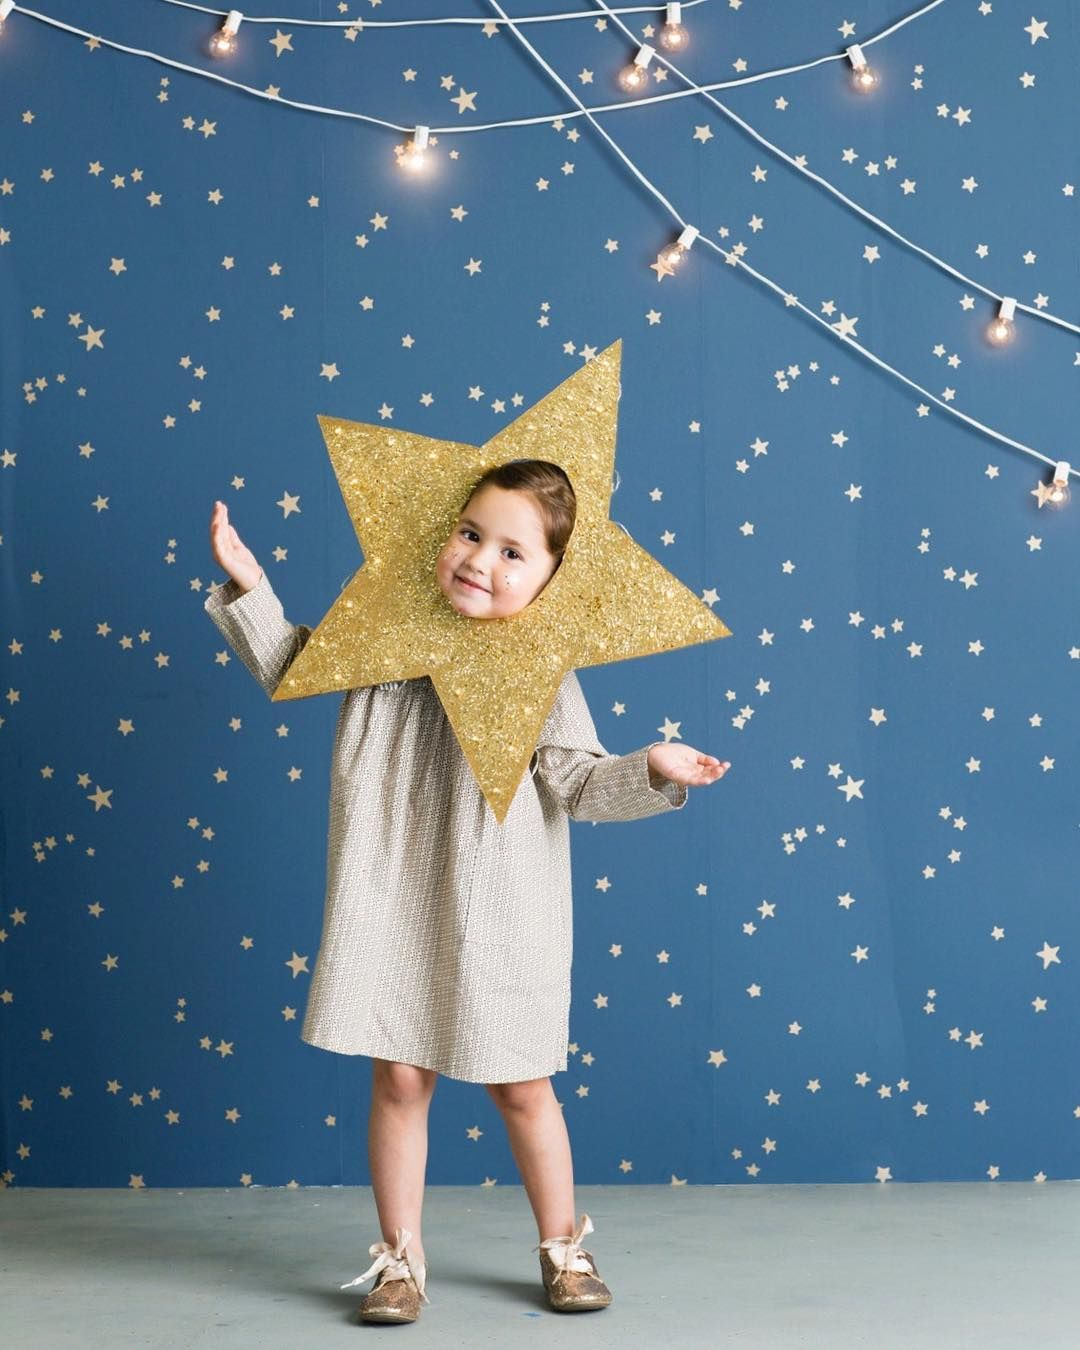 21a7fd0f31e twinkle star costume DIY with LED lights by mer mag